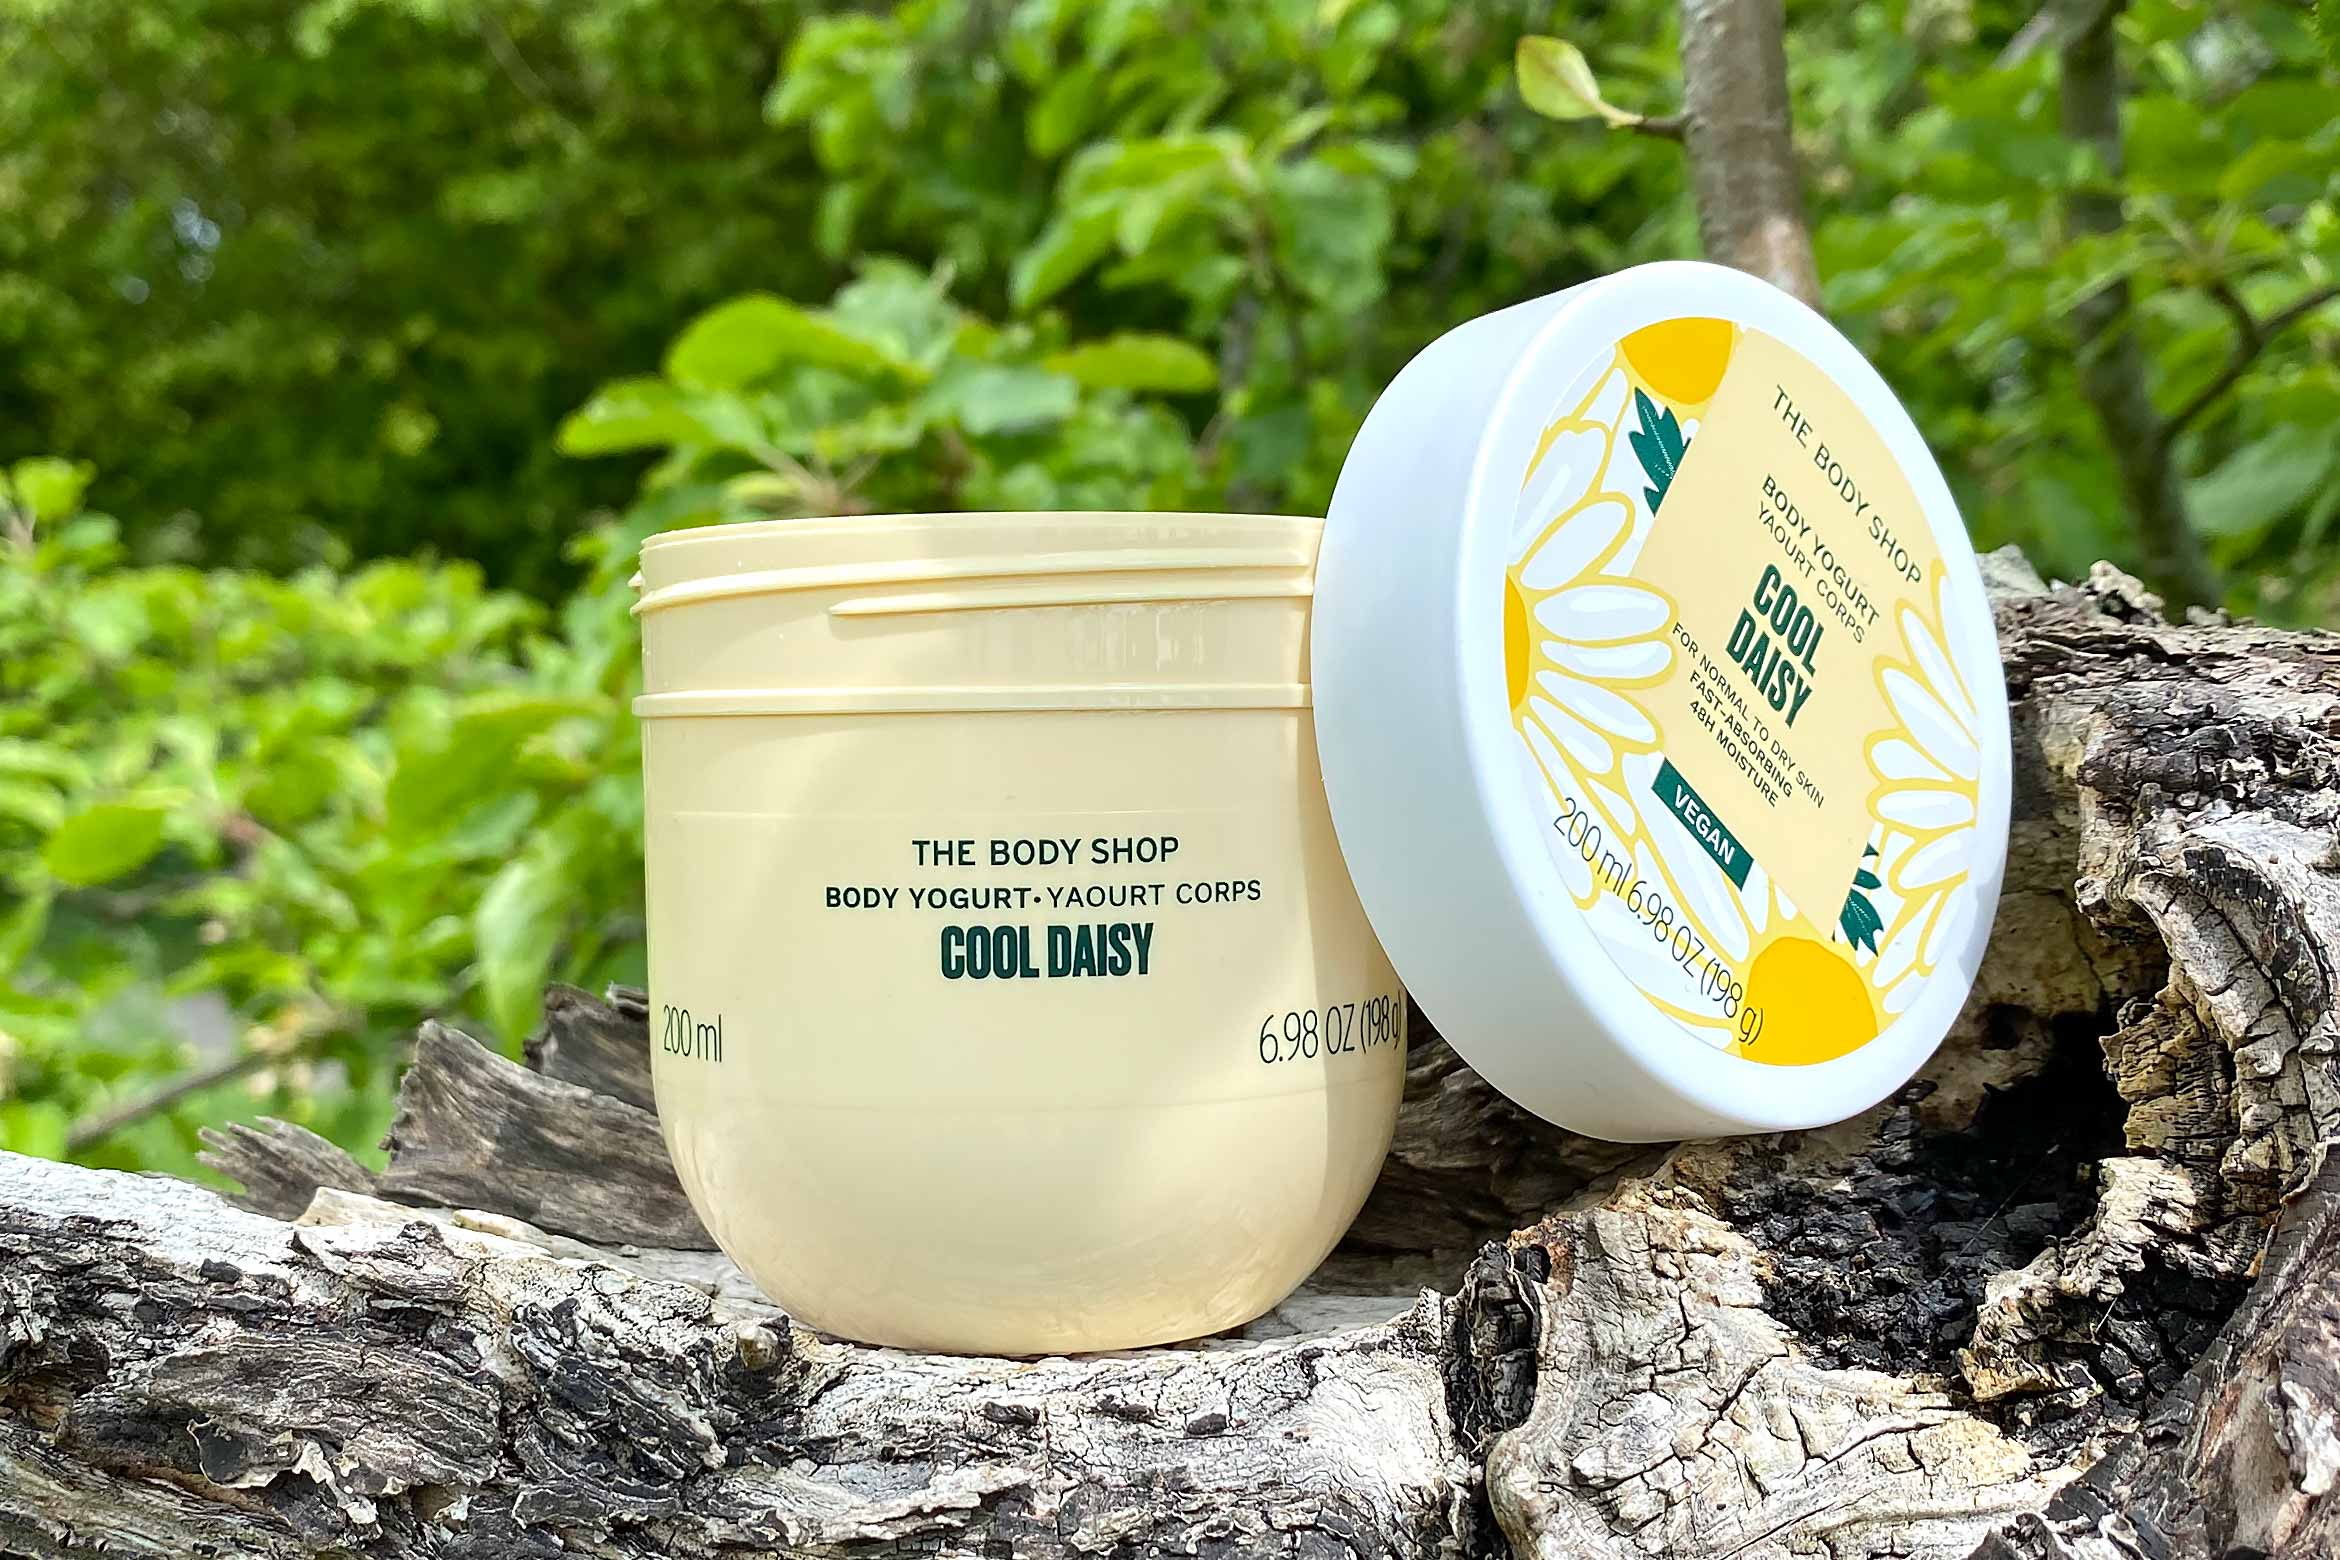 the body shop cool daisy body yoghurt review